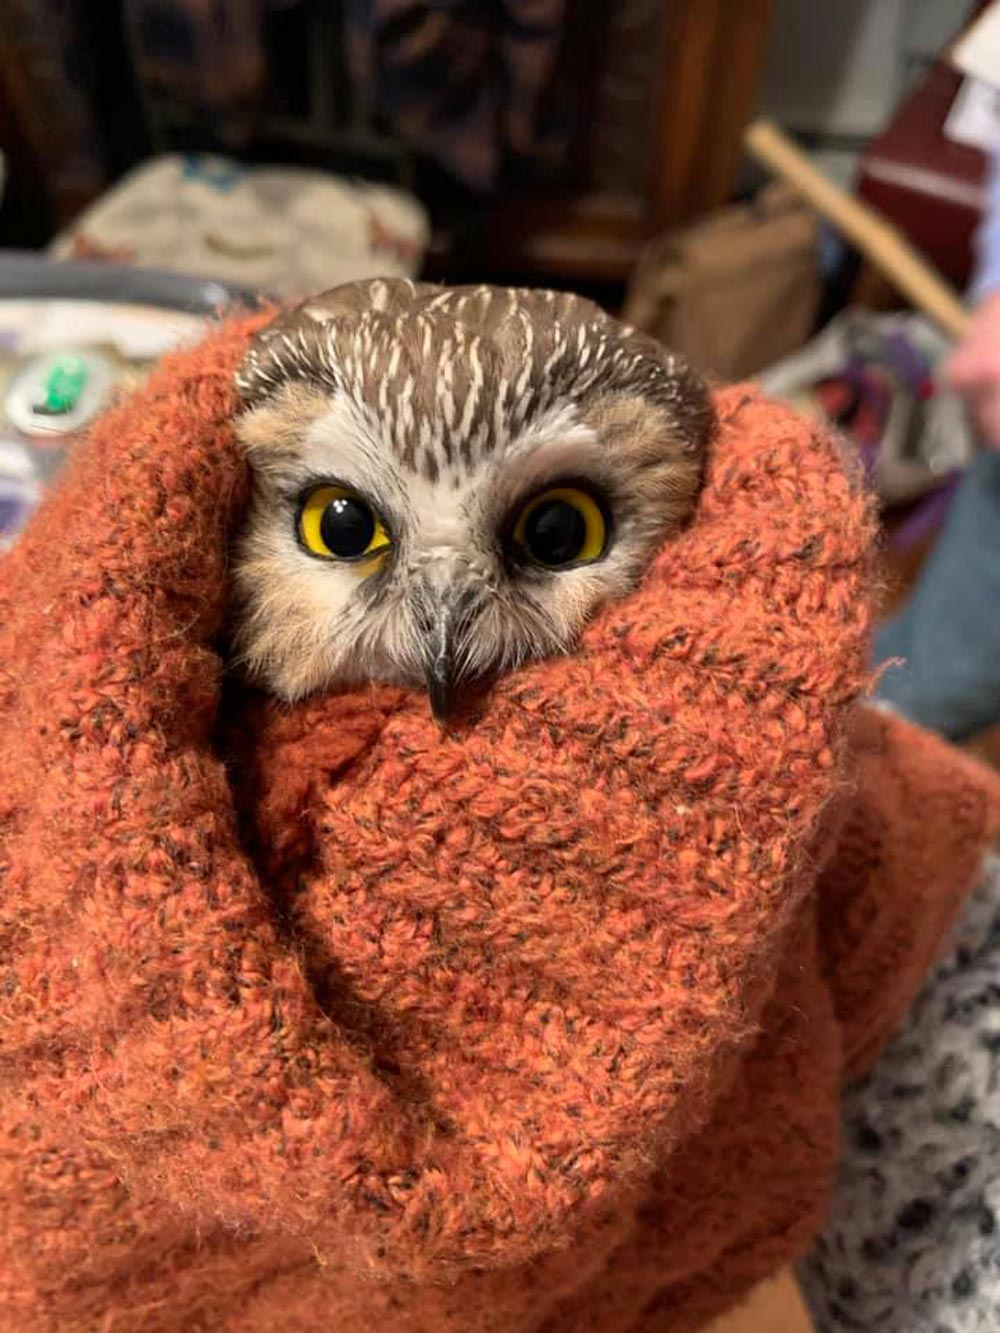 The saw-whet owl is the smallest type of owl in the northeast United States.